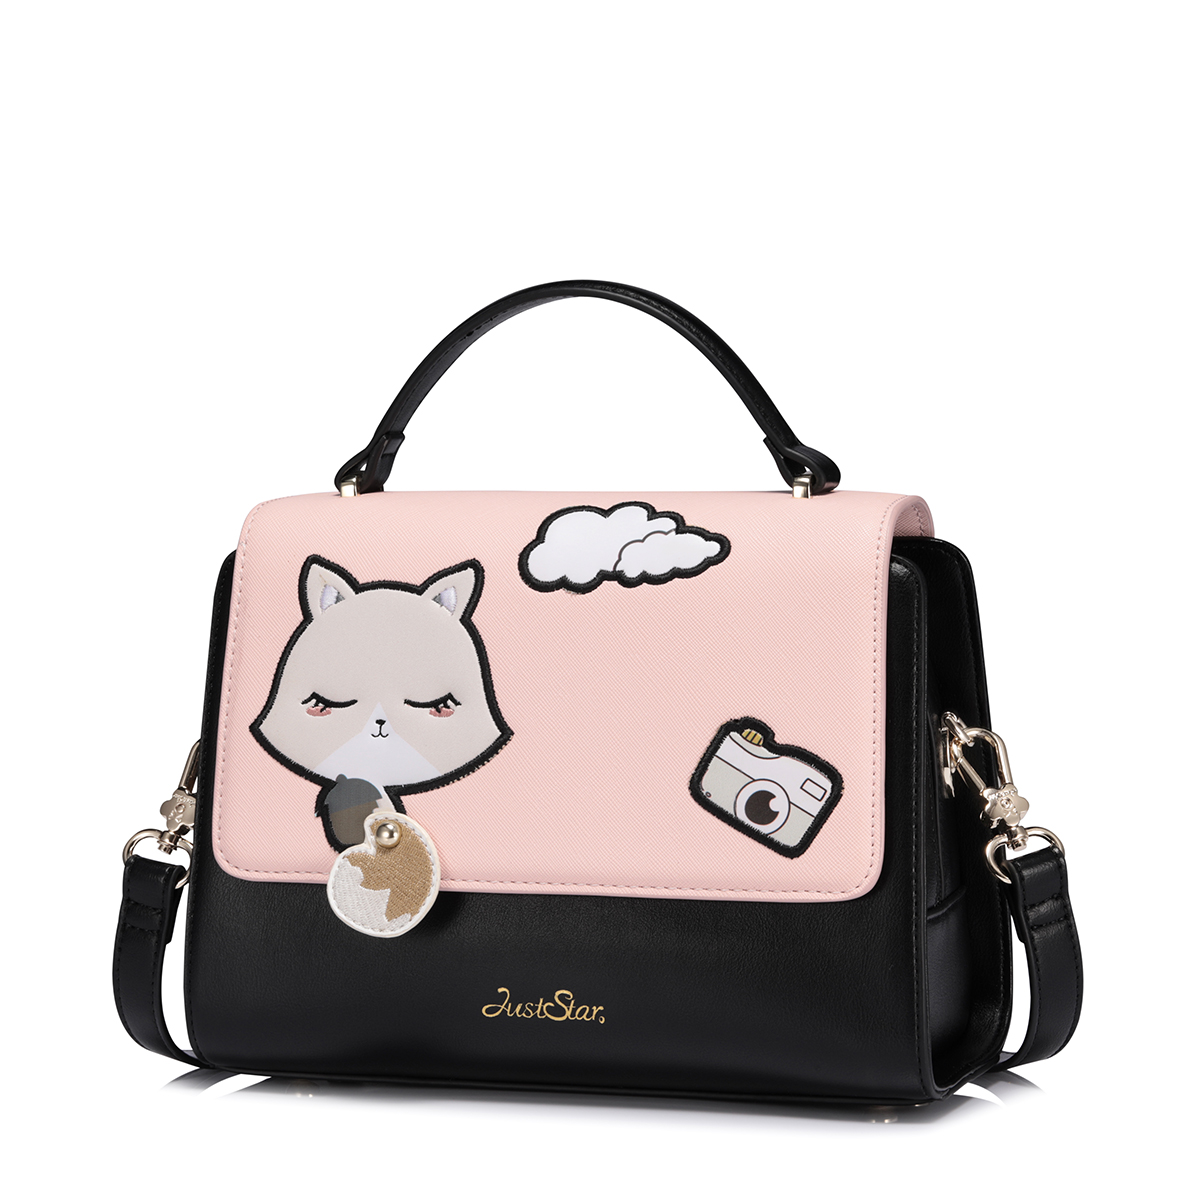 Just Star Animal Squirrel Purse Messenger Crossbody Shoulder Women Bag Clutch Female Handbags Sac a Main Femme De Marque Girls women small bag crossbody bag shoulder messenger bags leather handbags women famous brands bolsa sac a main femme de marque